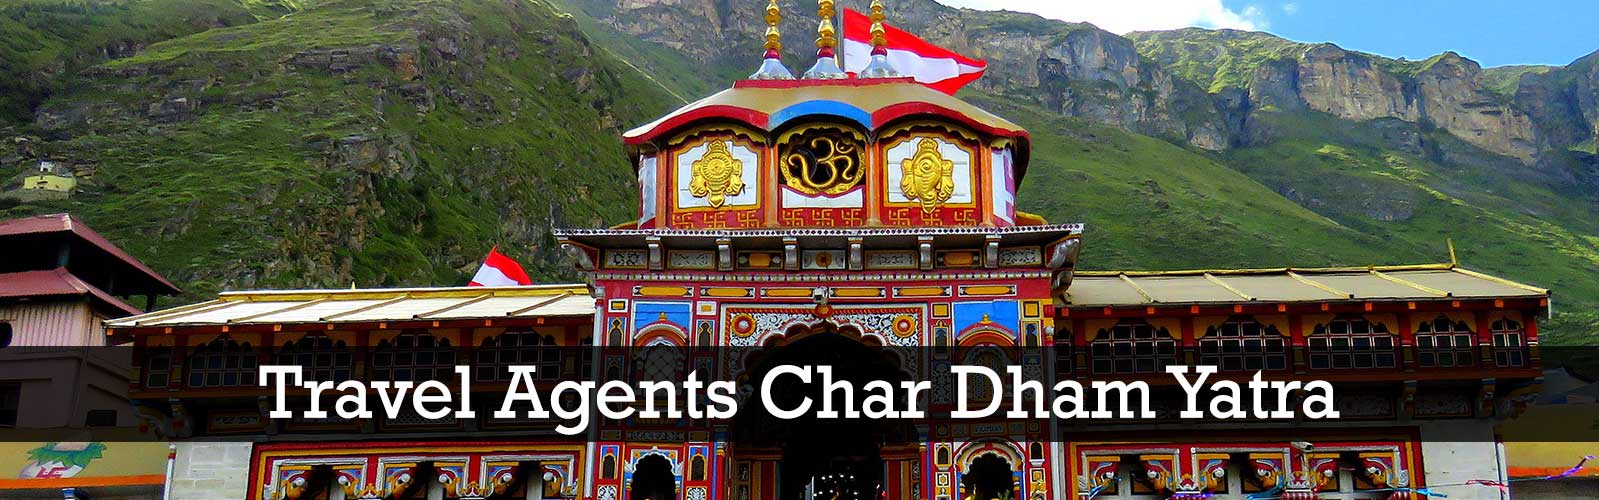 Chardham Travel Agent in Haridwar